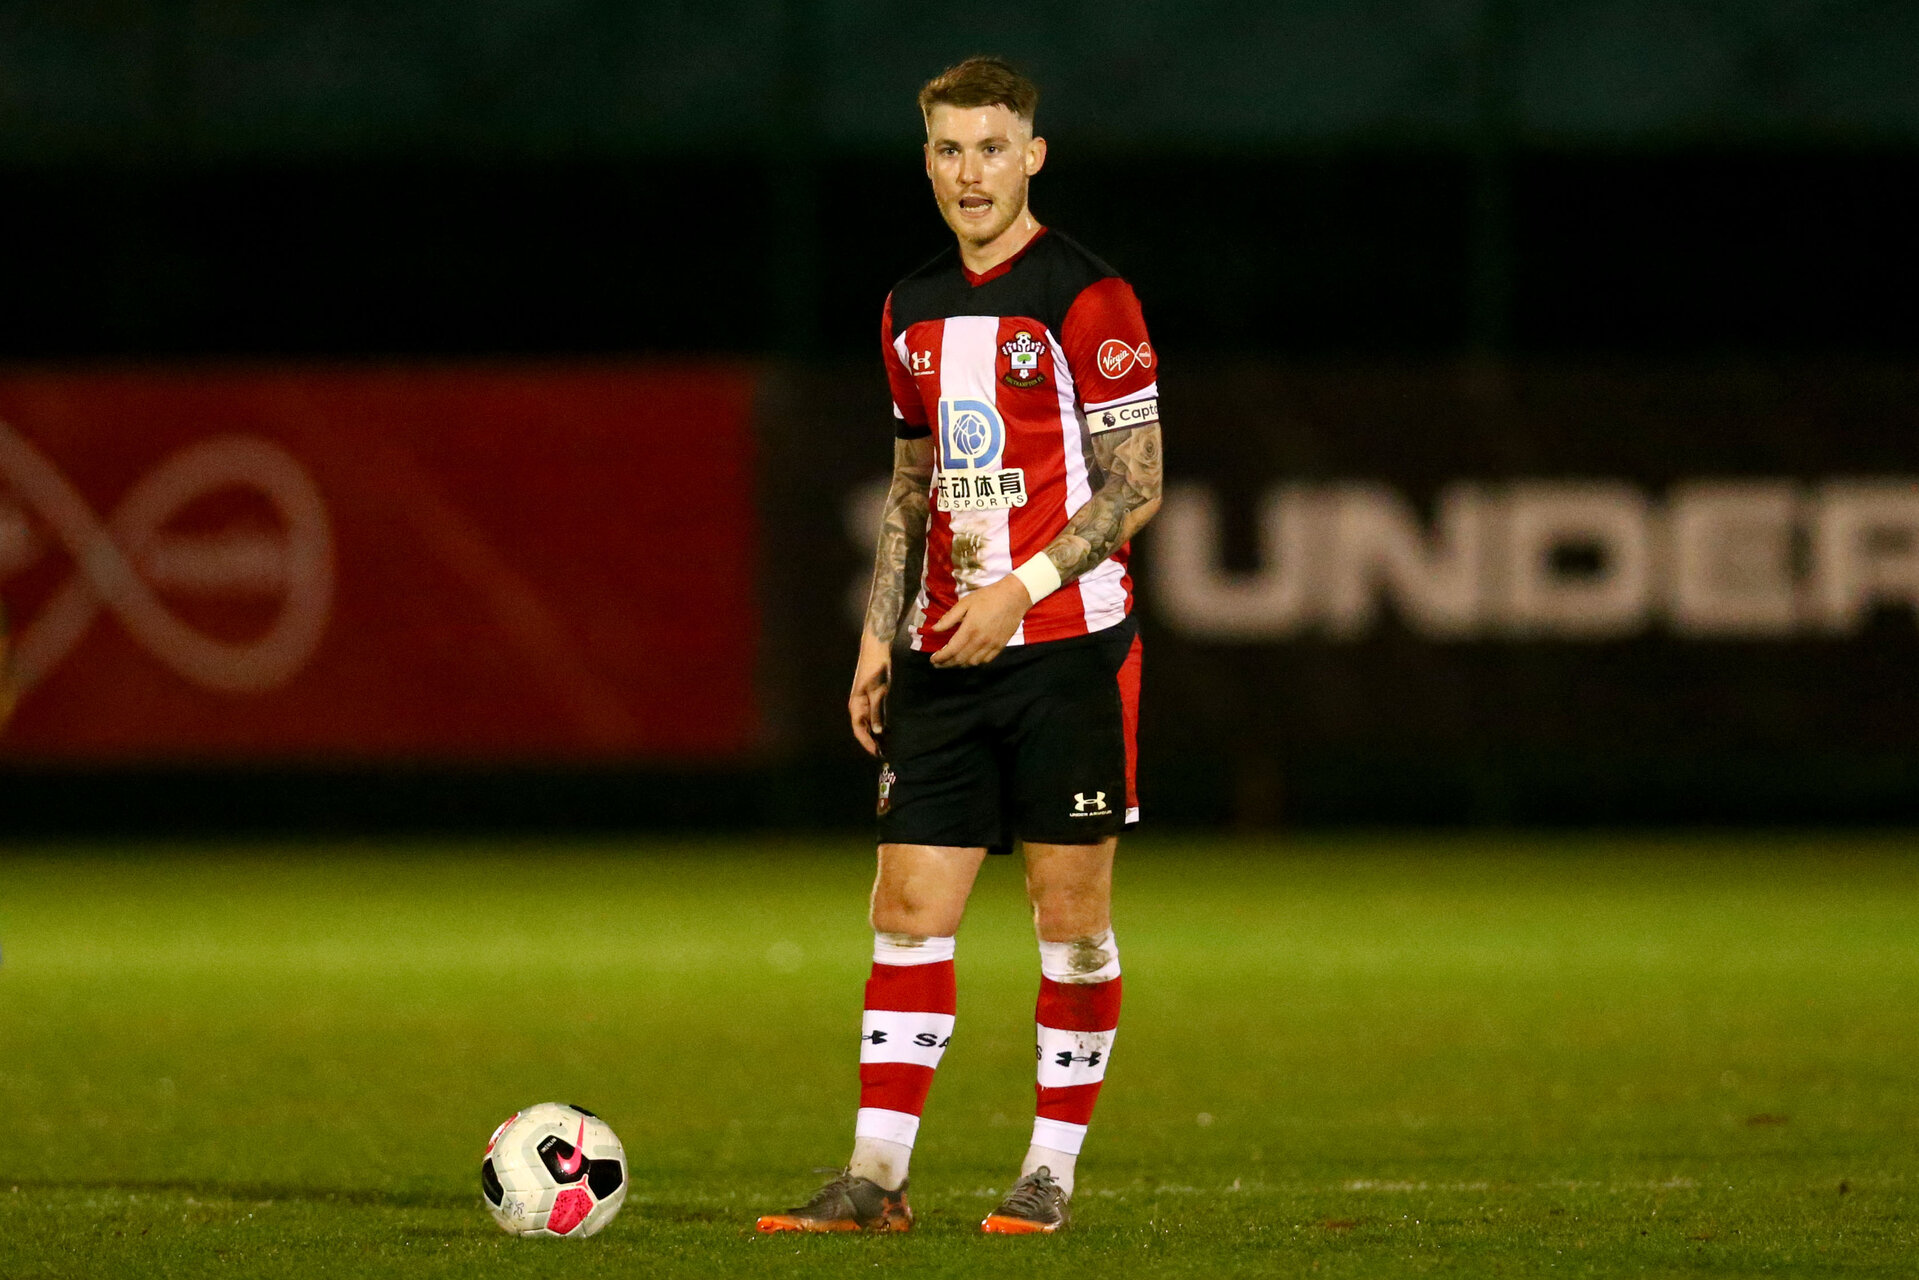 LONDON, ENGLAND - November 27: Callum Slattery free kick of Southampton U23 during Premier League International Cup match between Southampton and Monaco at Staplewood Training Center, Southampton on November 27 2019 in London England (Photo by Isabelle Field/Southampton FC via Getty Images)